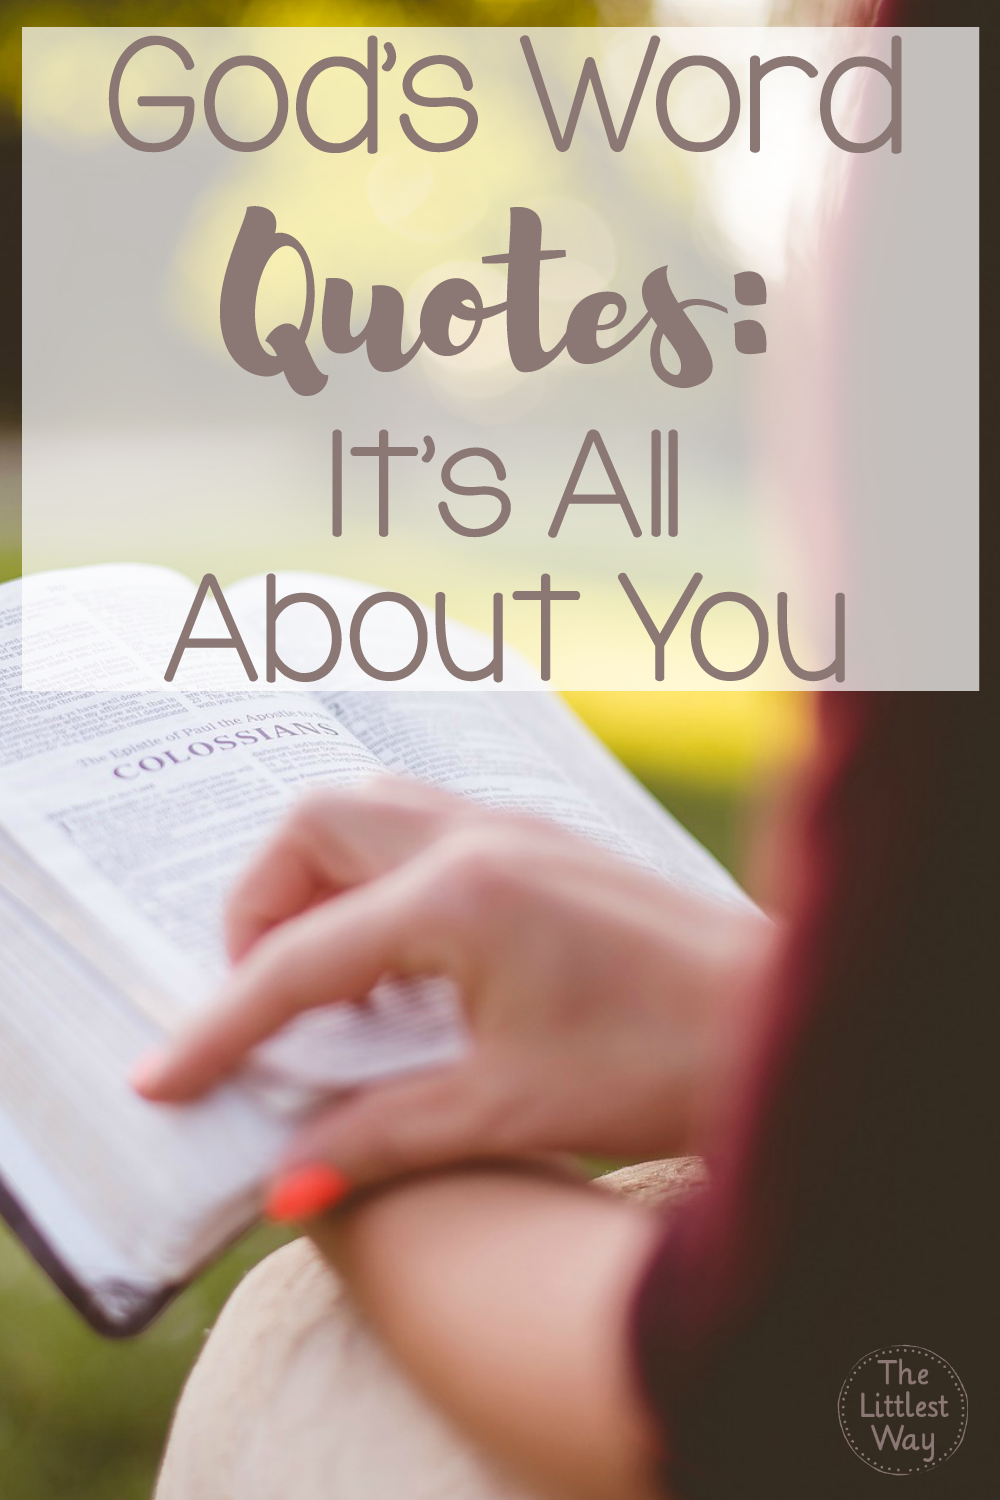 This post in God's Word Quotes is all about reading the Bible for yourself before you read it for others.